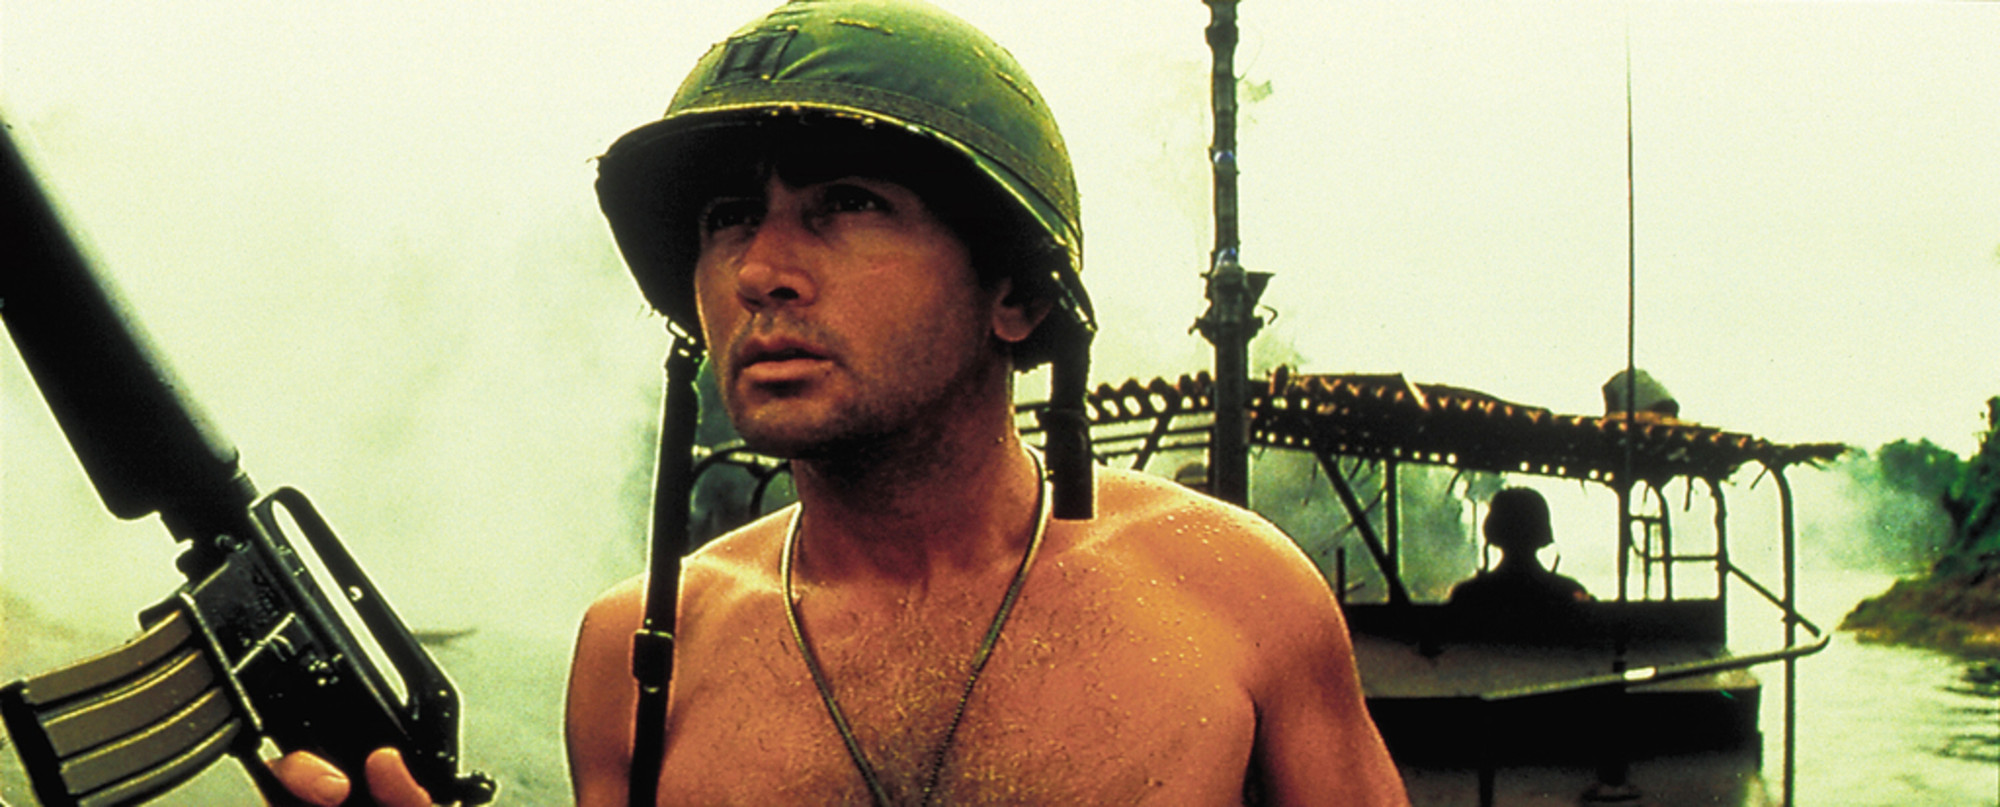 Apocalypse Now Redux. 1979/2001. USA. Directed by Francis Ford Coppola